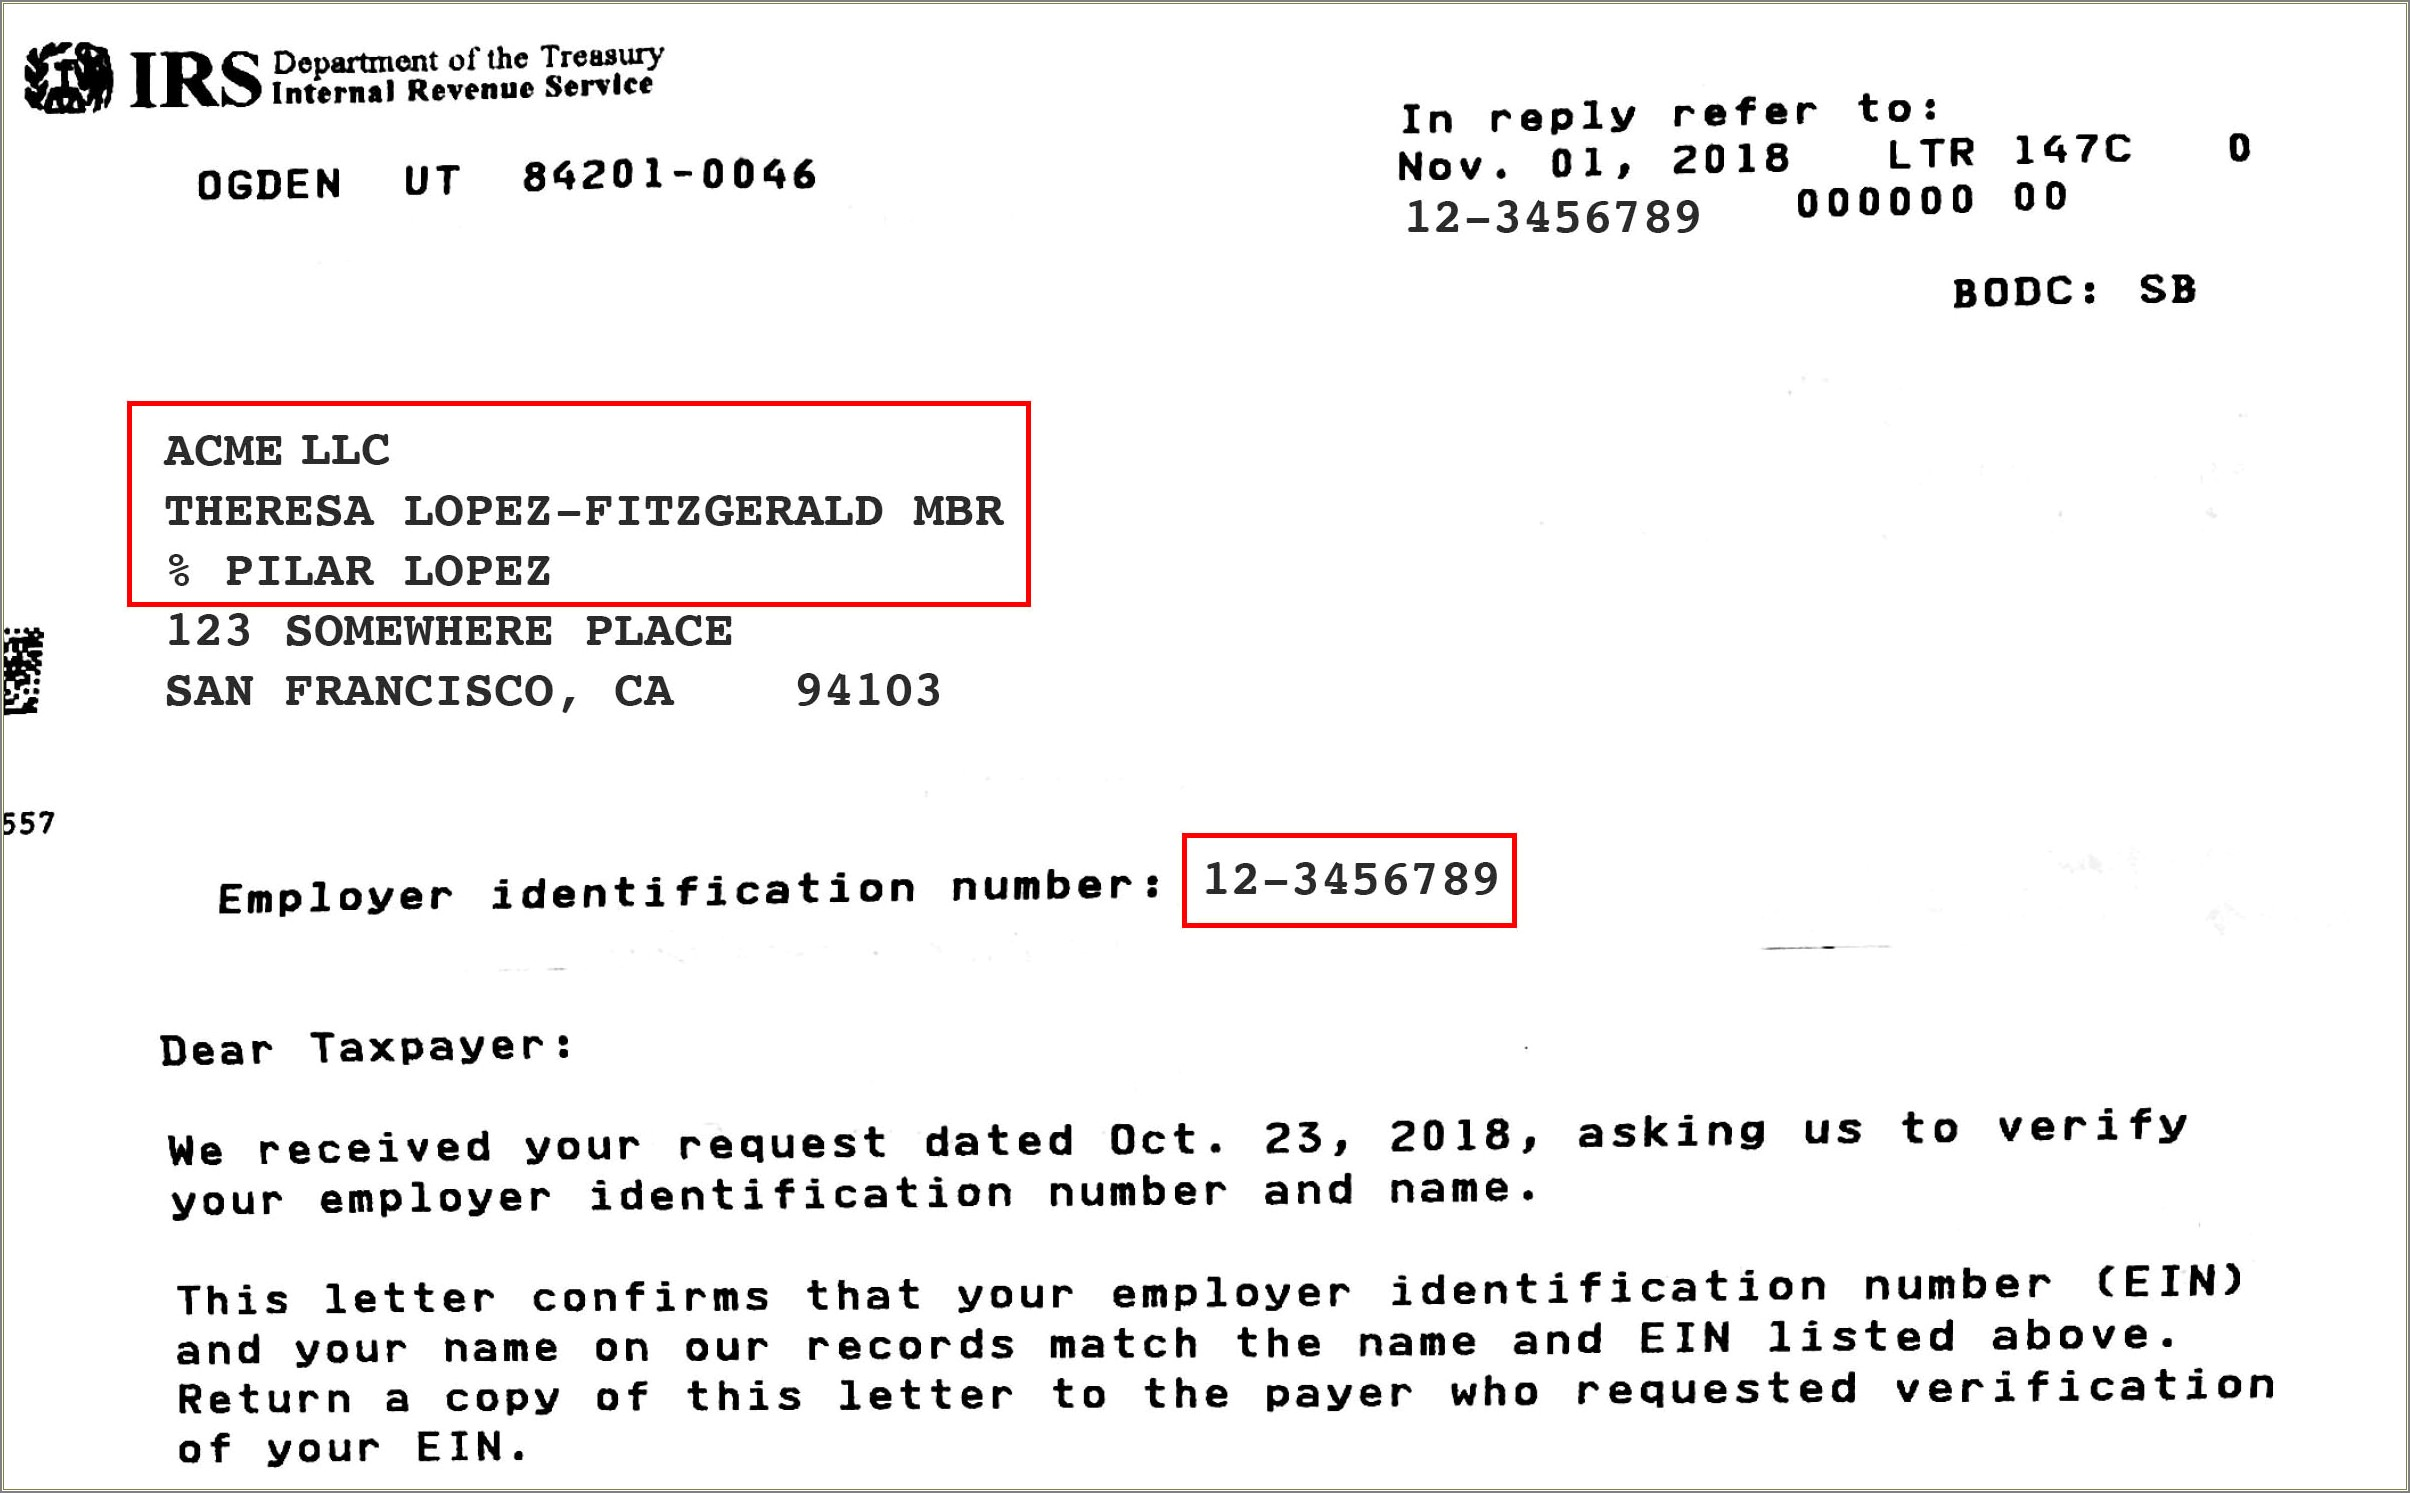 Irs Tax Letter 147c